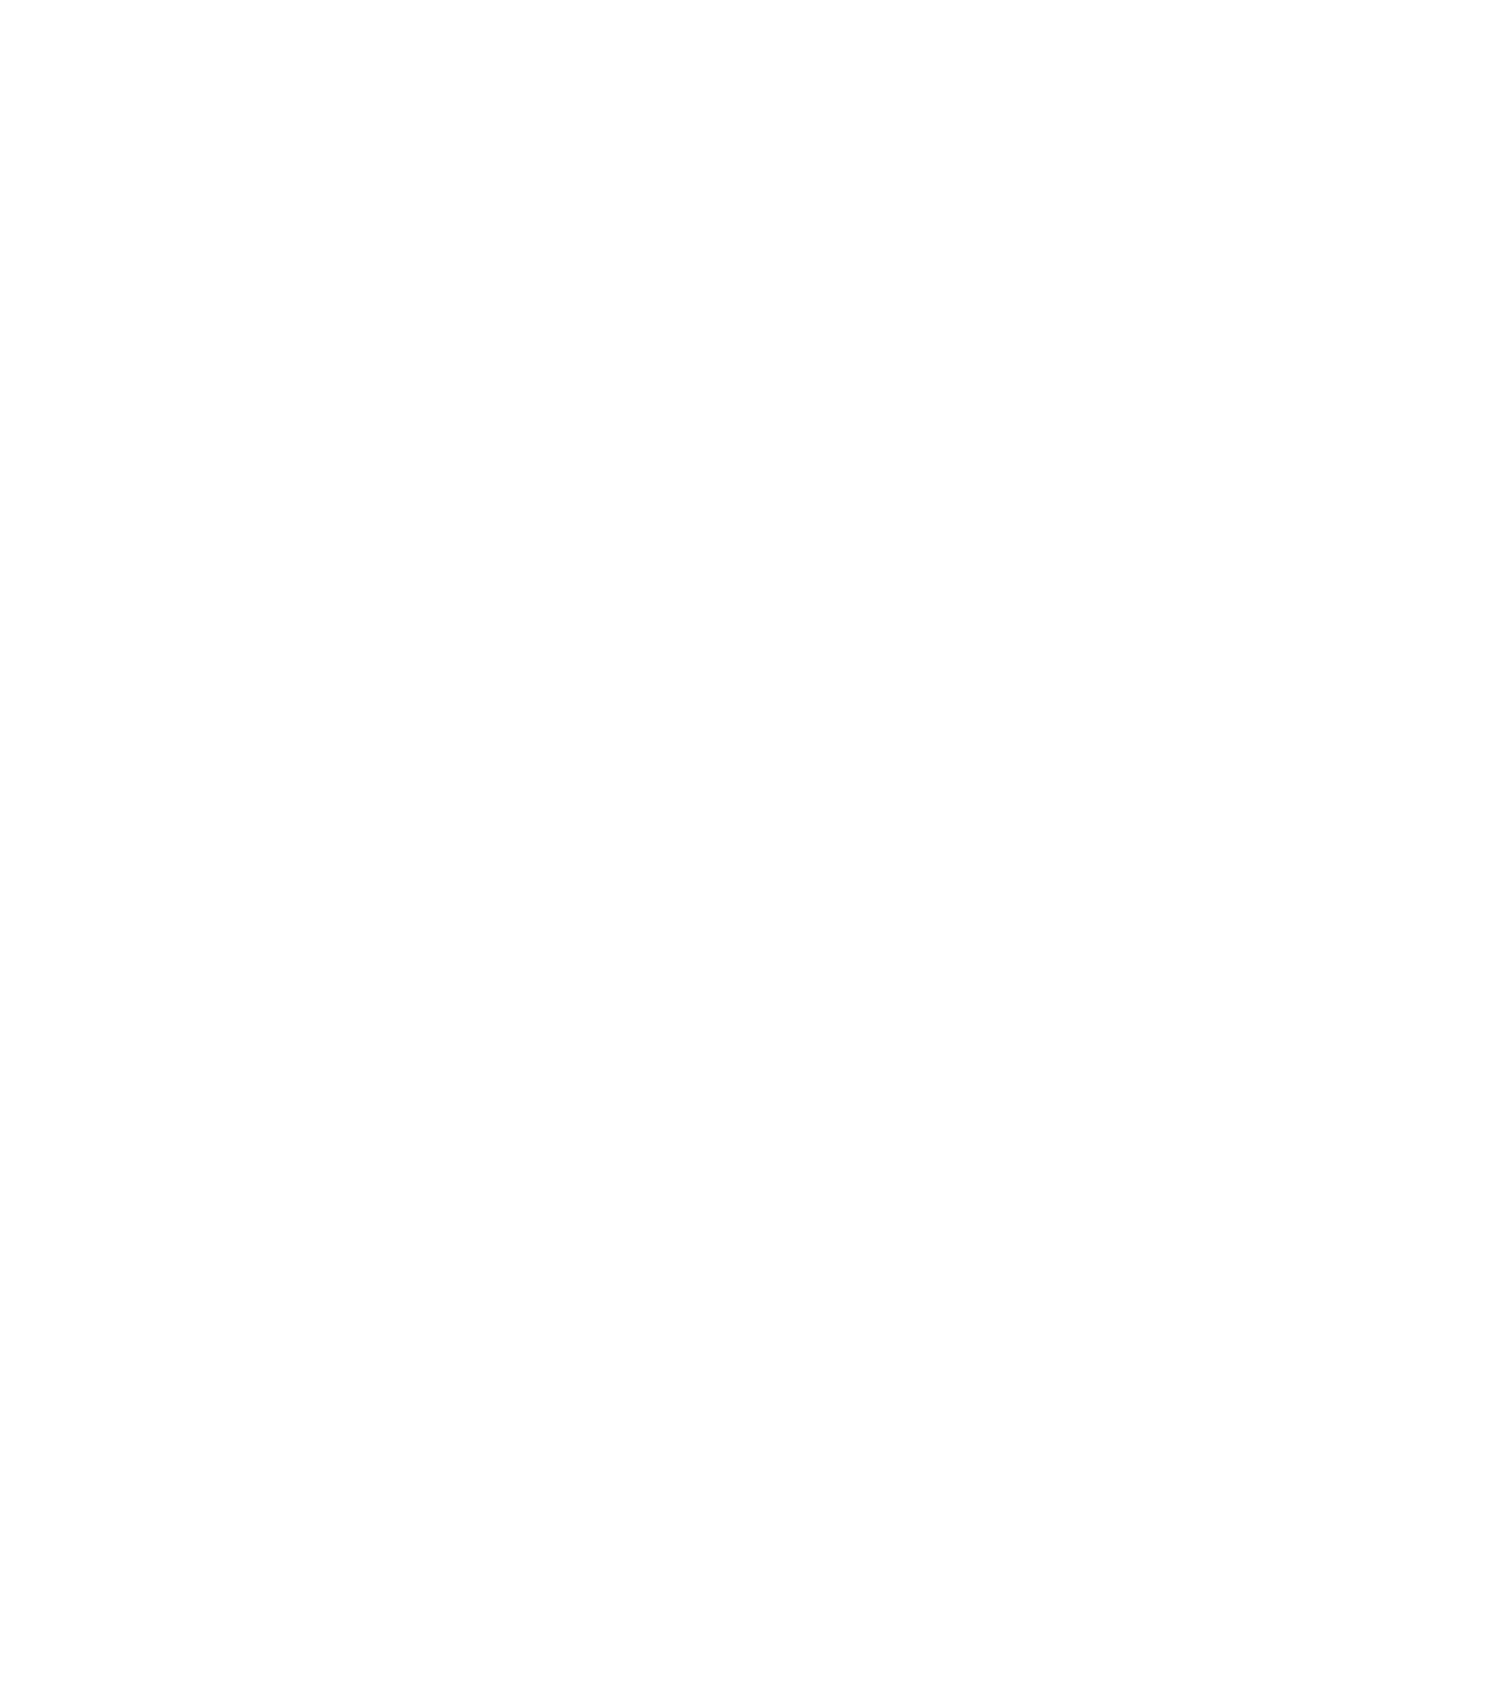 Heartwood Institute